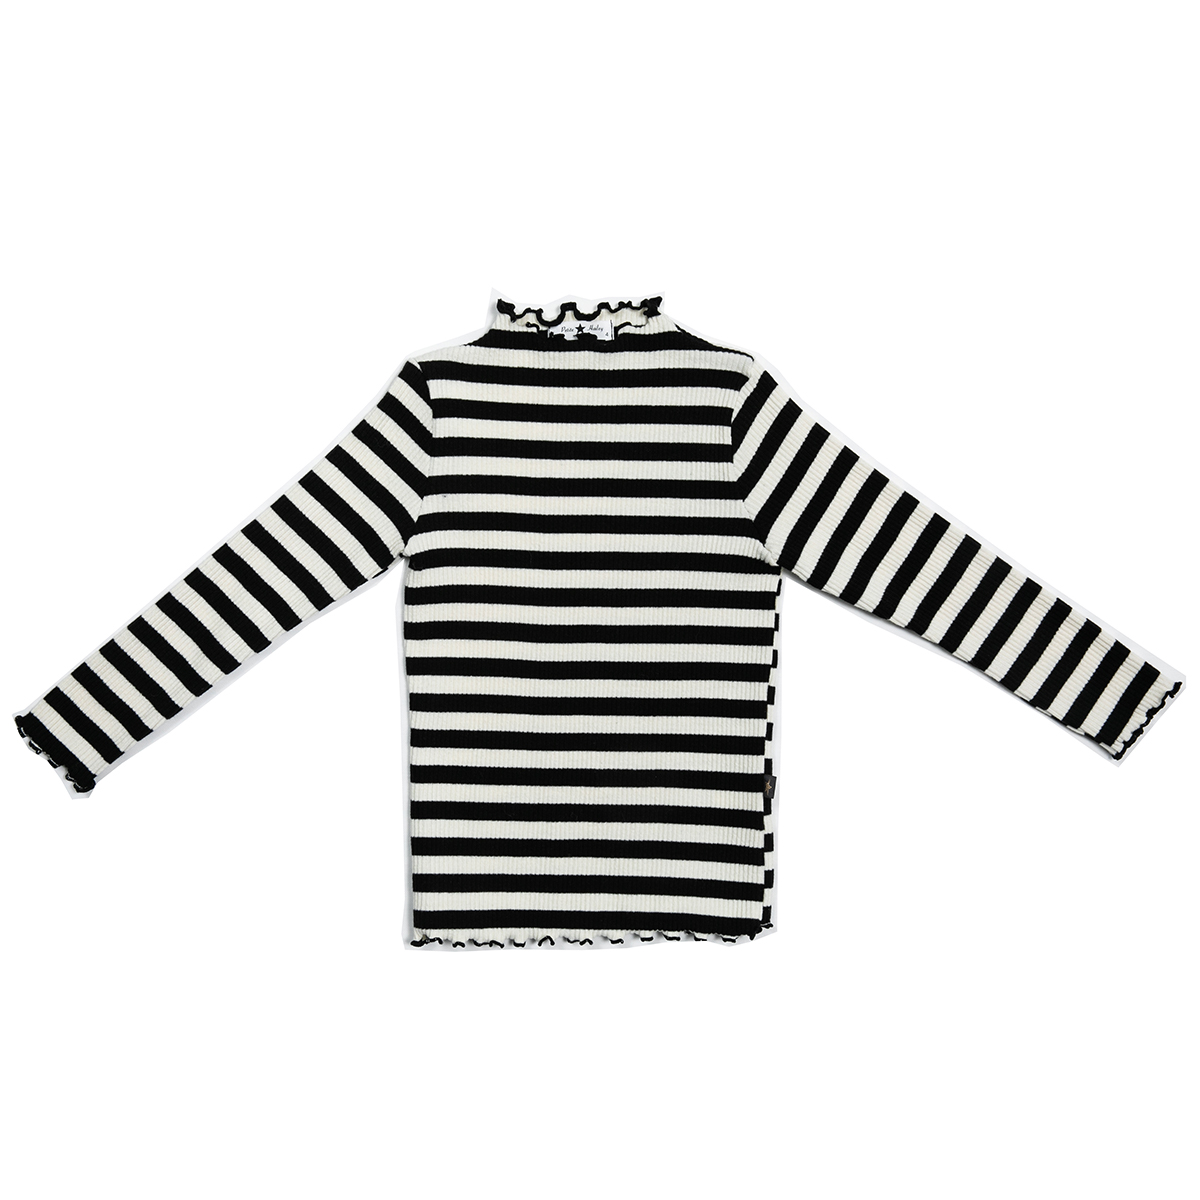 Petite Hailey Ava Long Sleeve Shirt in Stripe